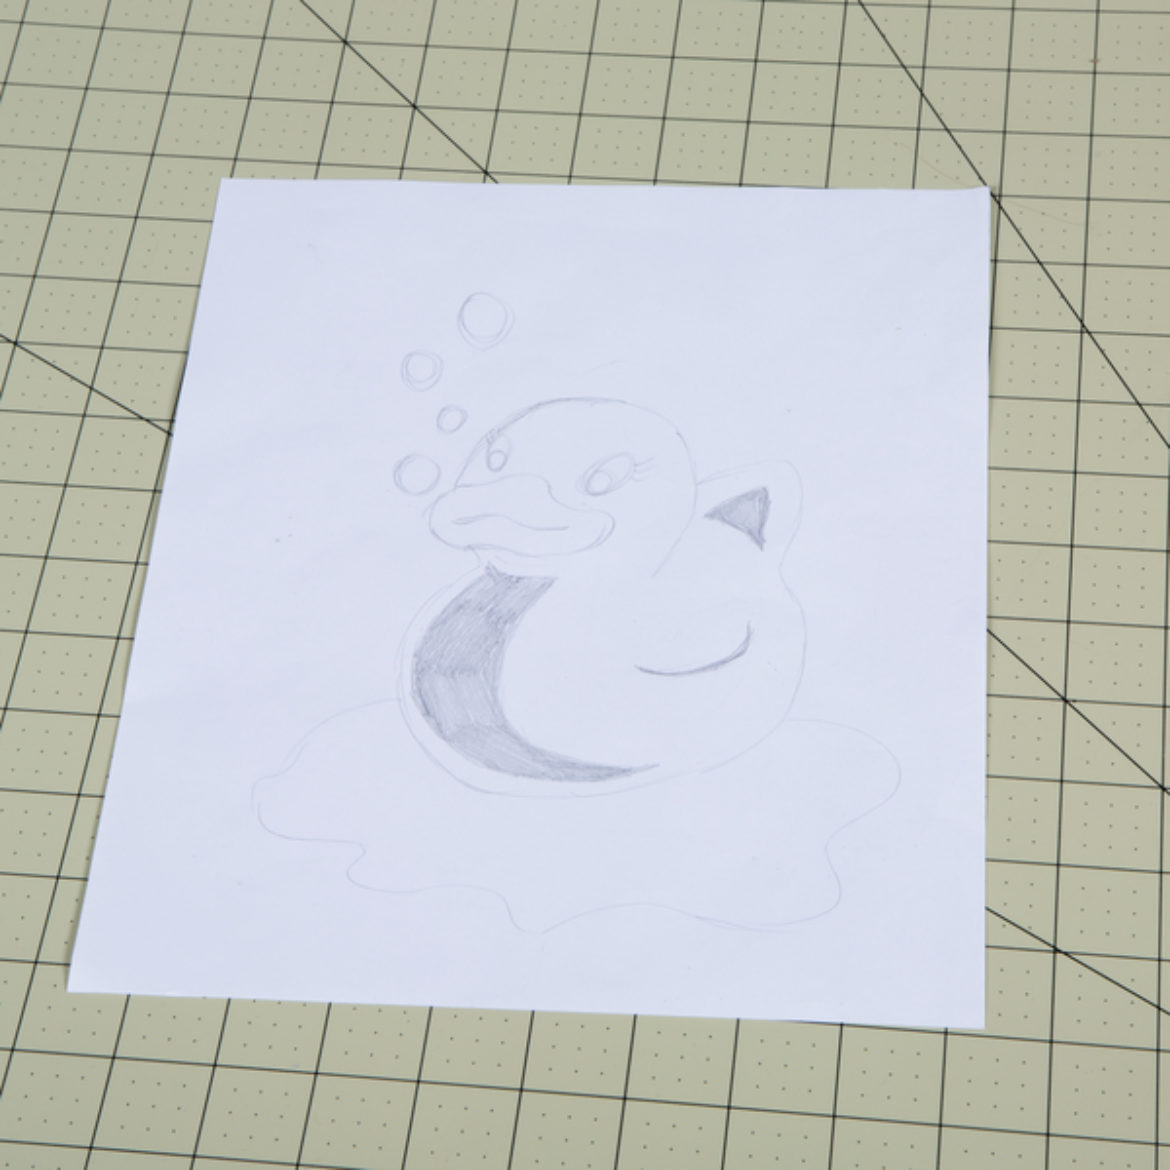 Picture of a Duck drawn onto a piece of paper